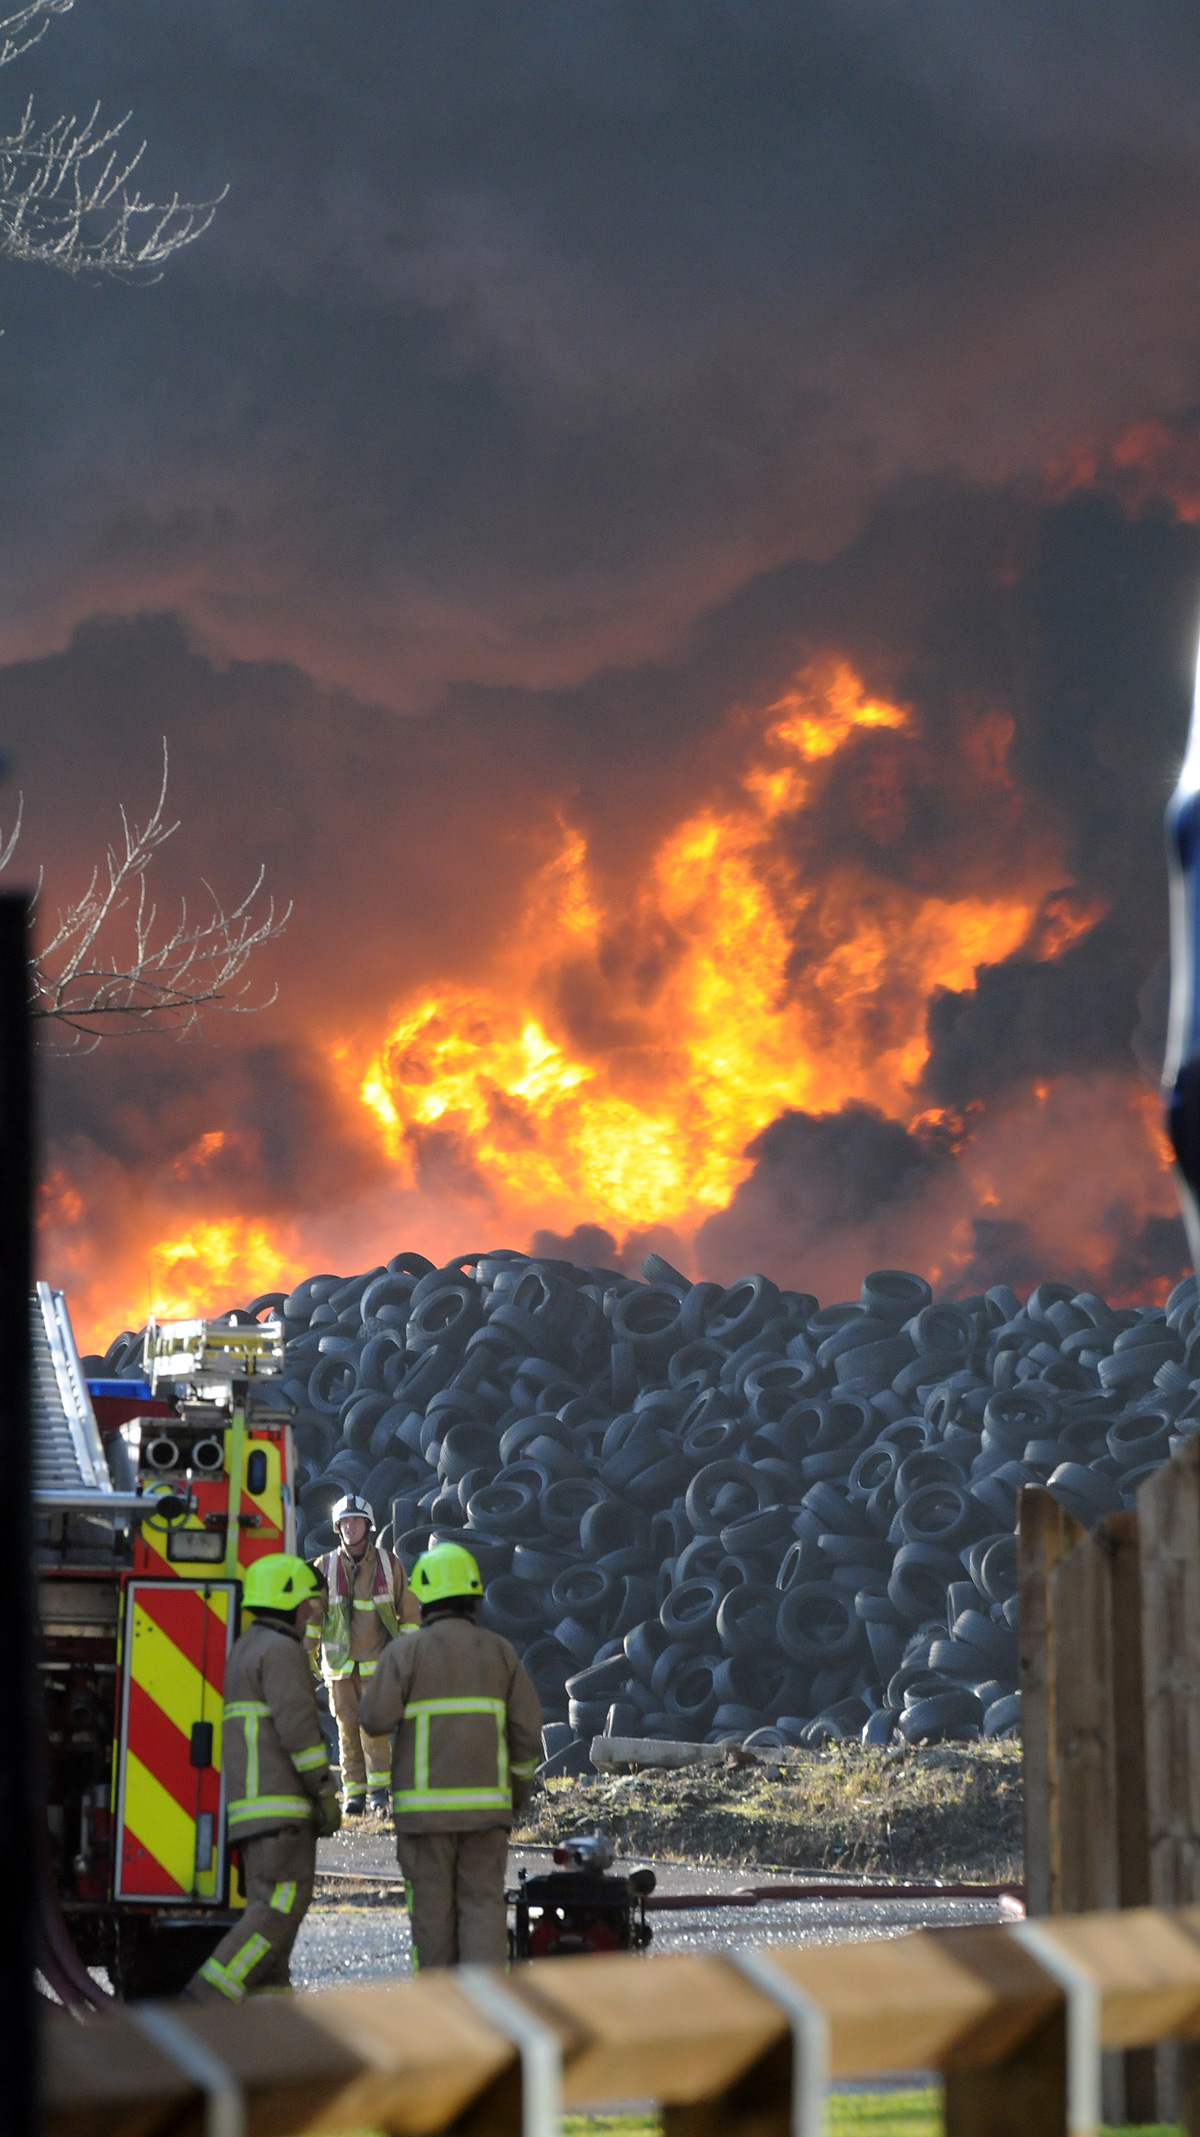 7.30pm UPDATE: Up to 15,000 tonnes of tyres ablaze - May burn for weeks - Schools will be open tomorrow - Locals told: stay indoors - Smoke visible from space